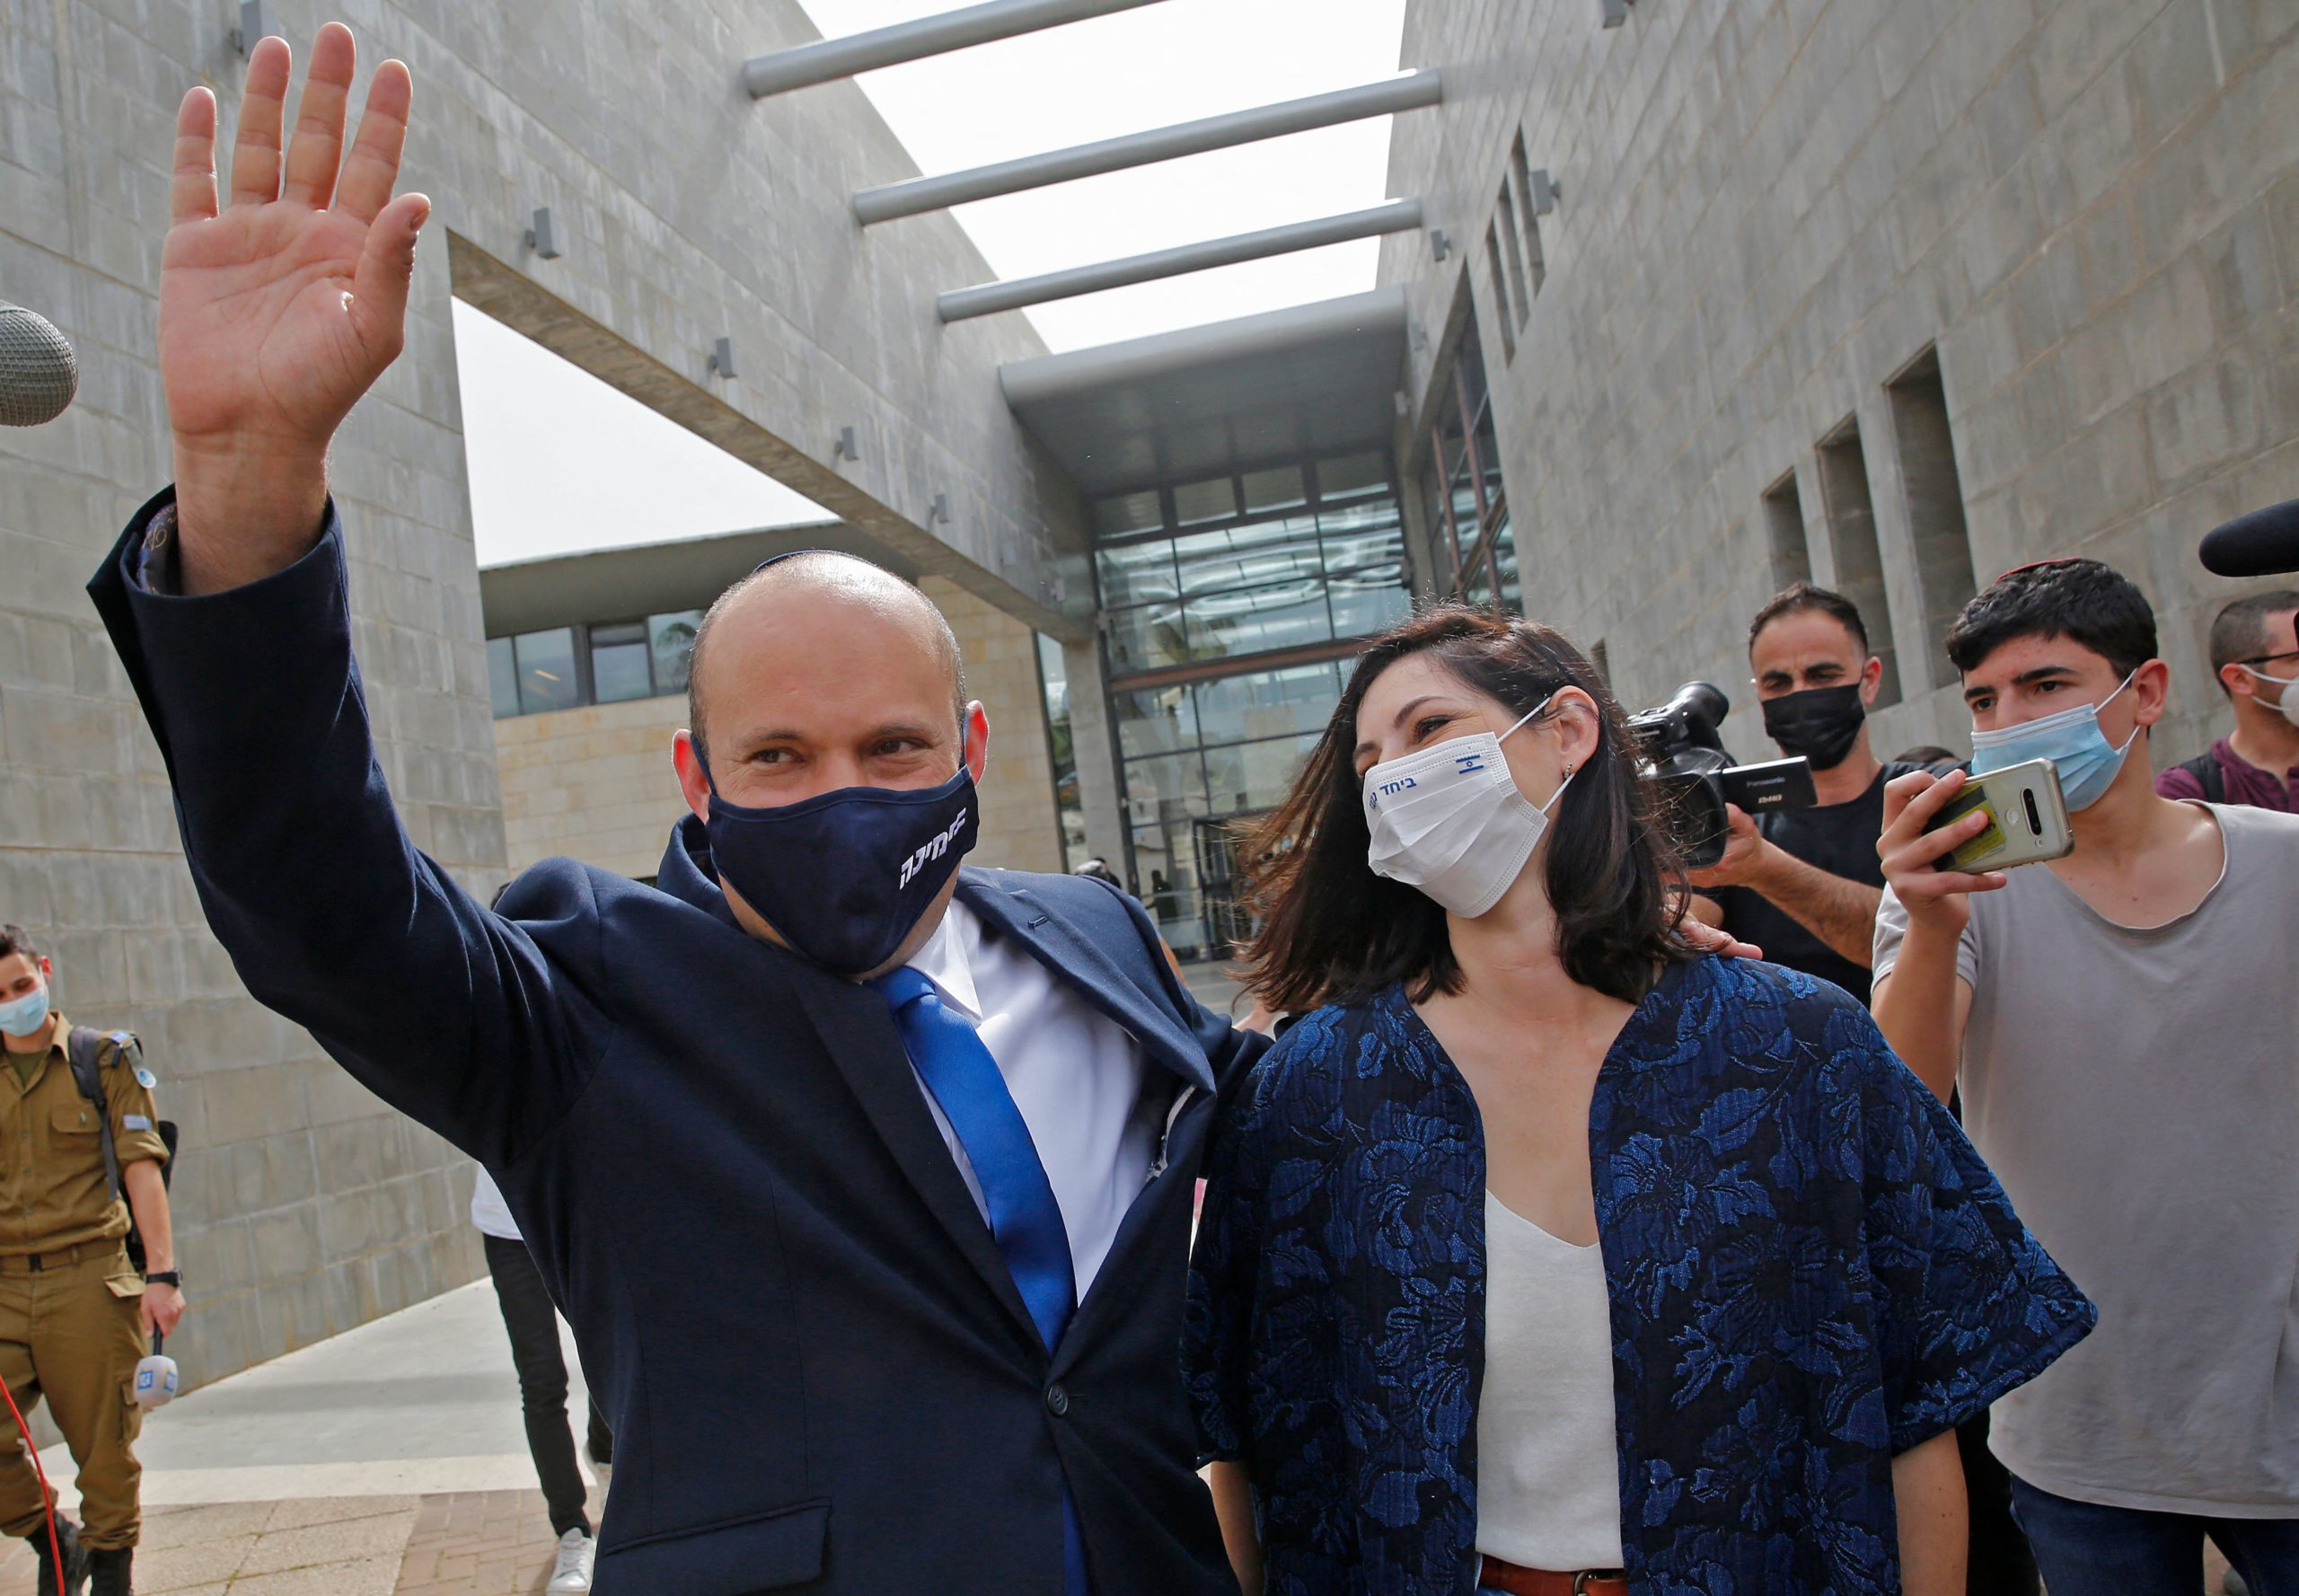 Israel's Naftali Bennett, leader of the right wing 'New Right' Yamina party, waves as he walks with his wife Gilat at a polling station where they voted on March 23, 2021 in the city of Raanana in the fourth national election in two years. (Photo by GIL COHEN-MAGEN/AFP via Getty Images)